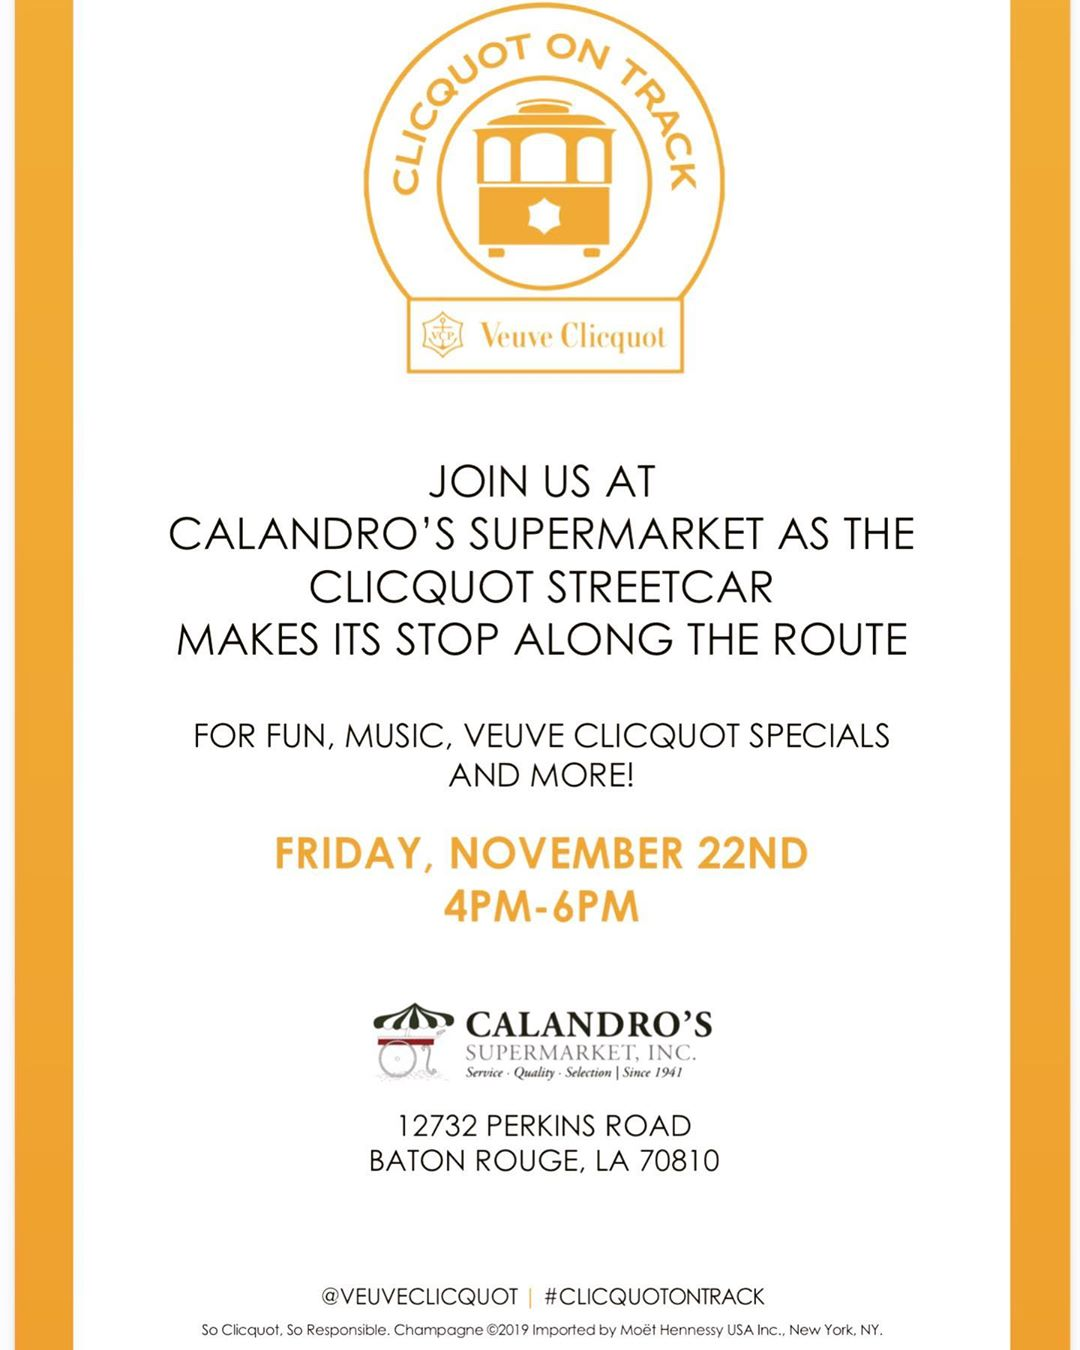 Veuve Clicquot's New Orleans Inspired streetcar will be making a stop by Calandro's at Government…